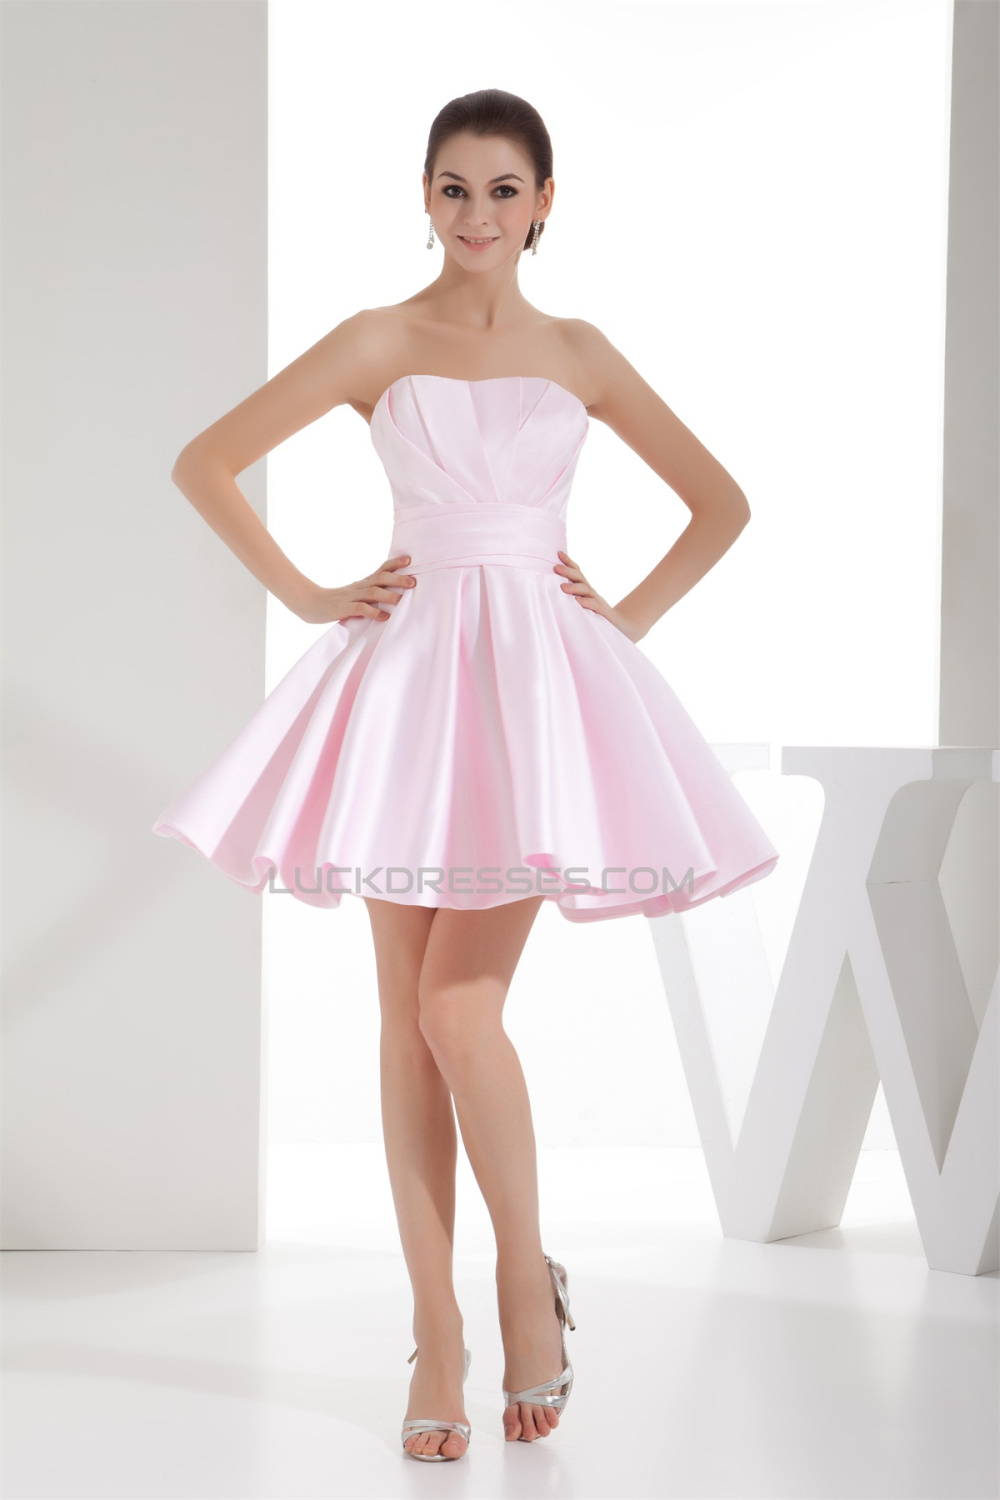 586060c726e A-Line Ruffles Satin Soft Sweetheart Short Mini Pink Bridesmaid Dresses  02010397